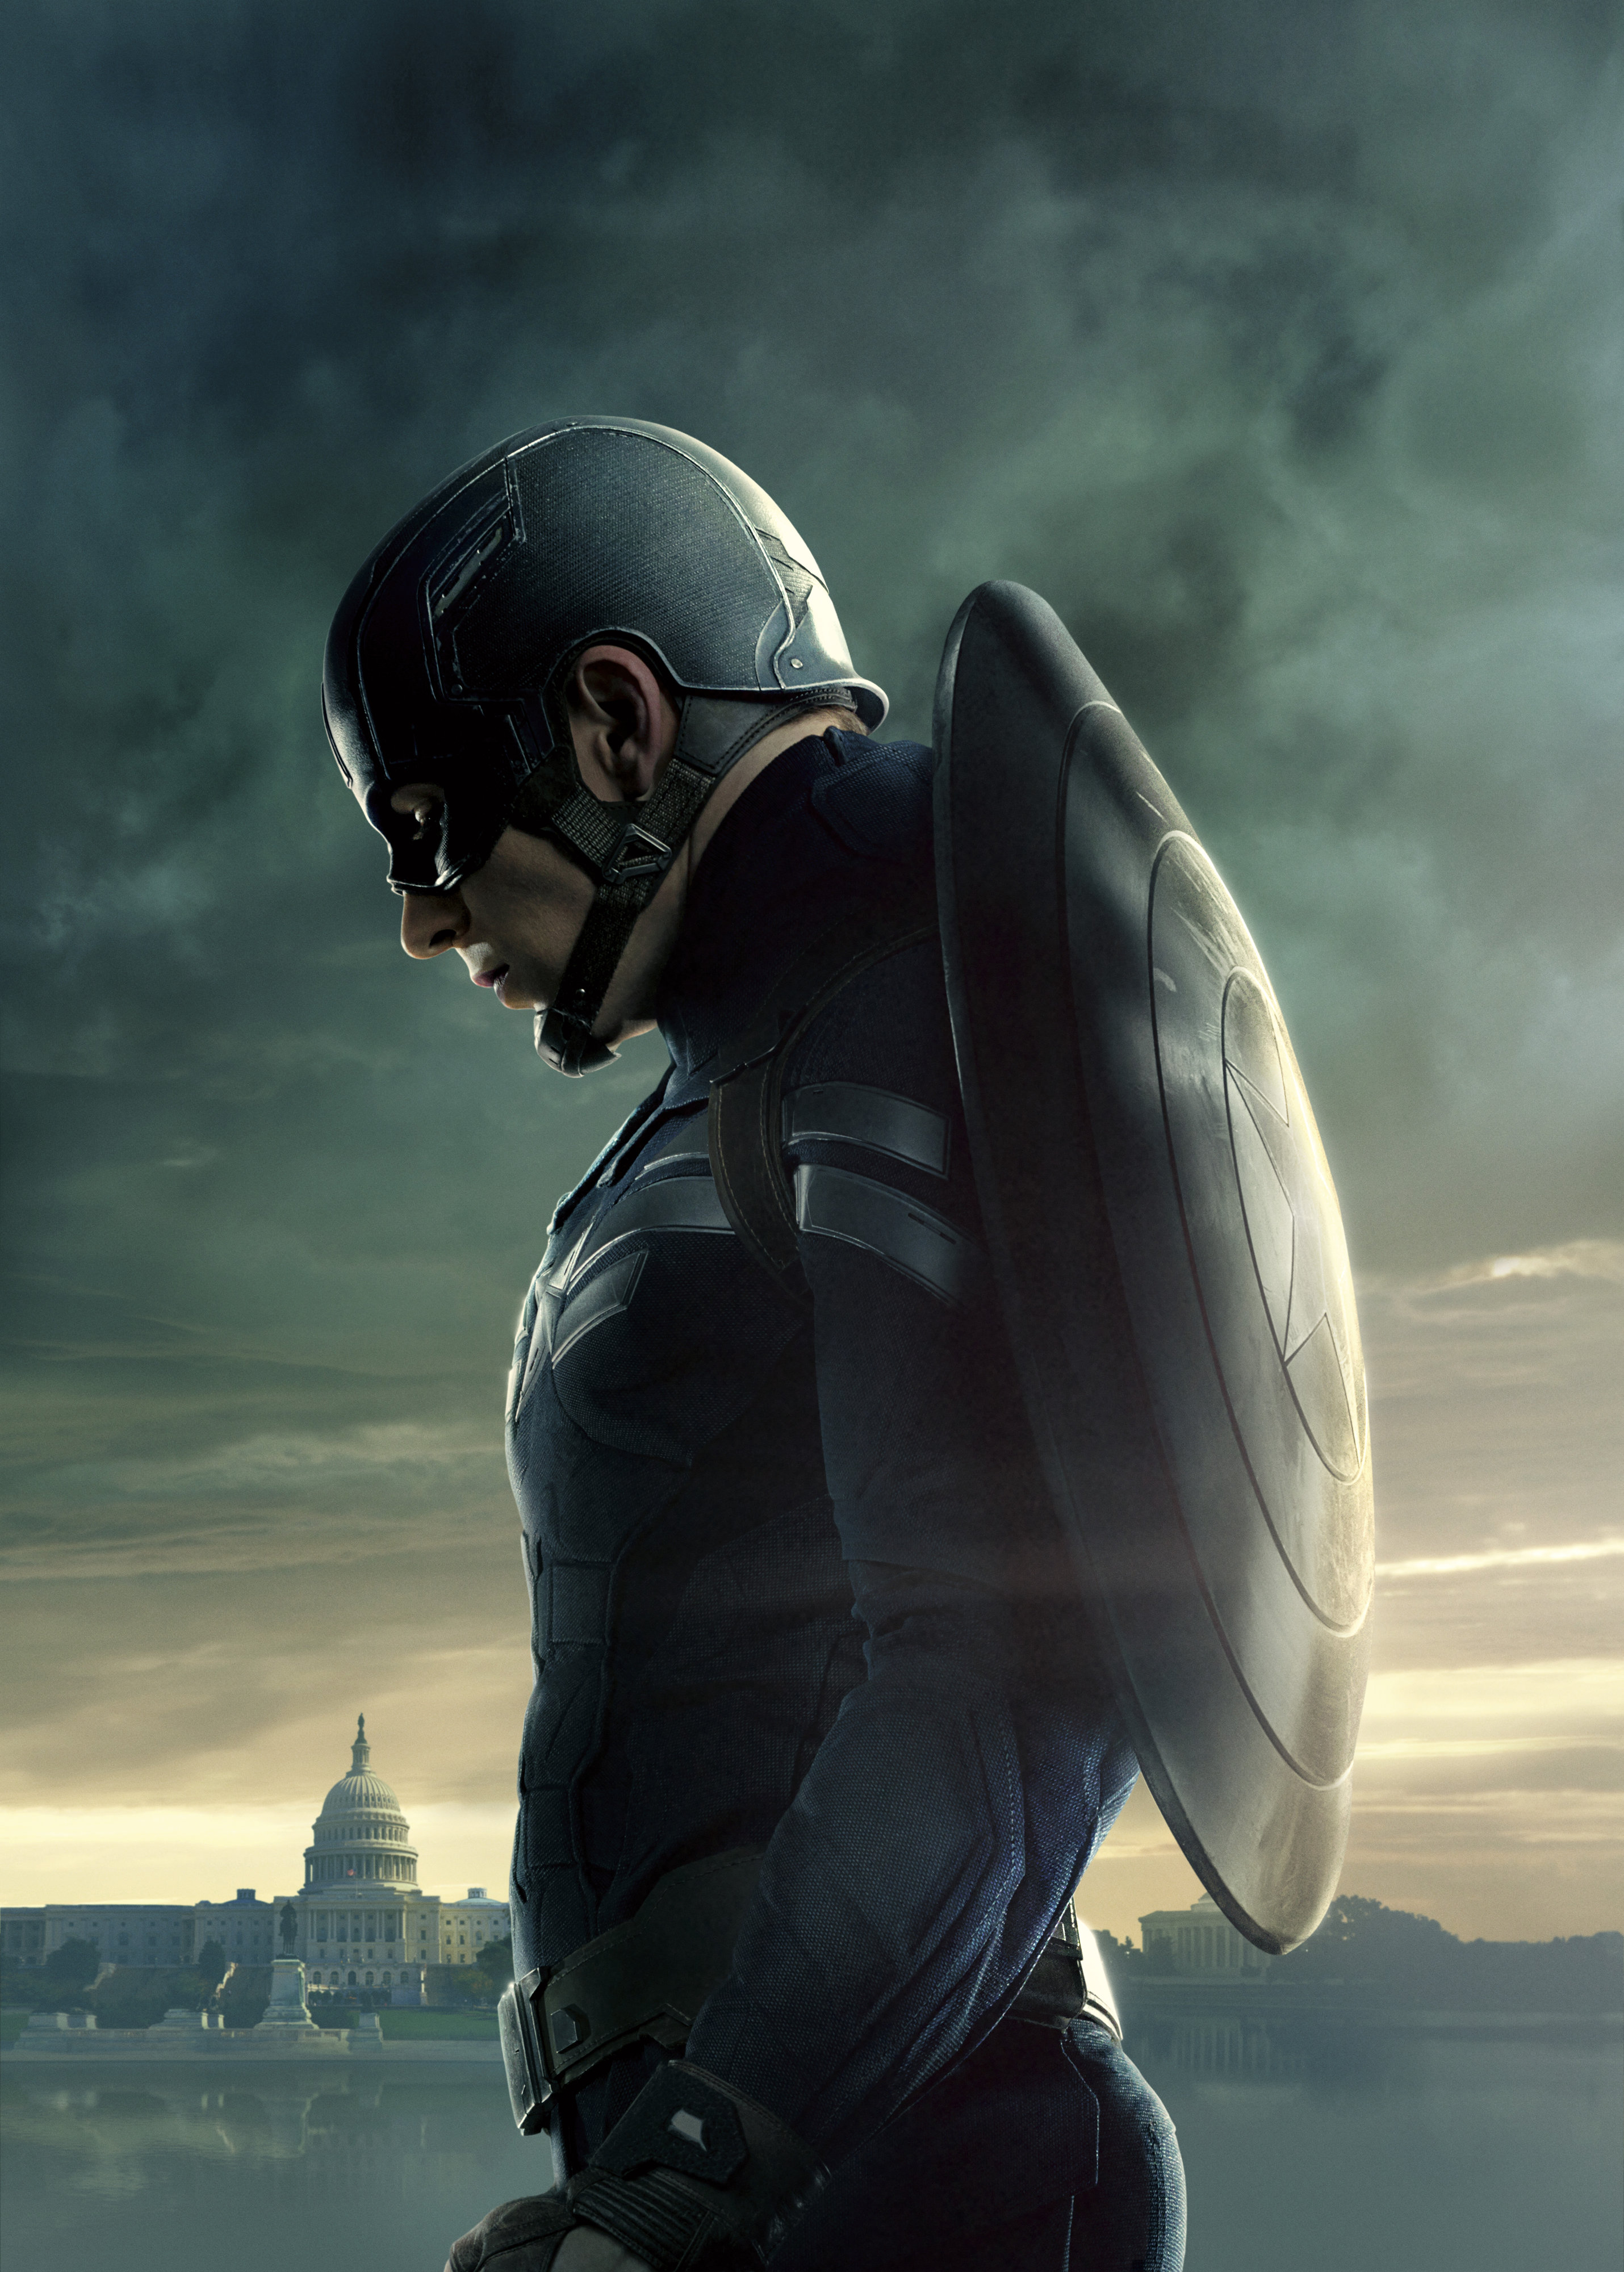 Dhoni Wallpaper With Quotes Captain America Costume Images Popopics Com